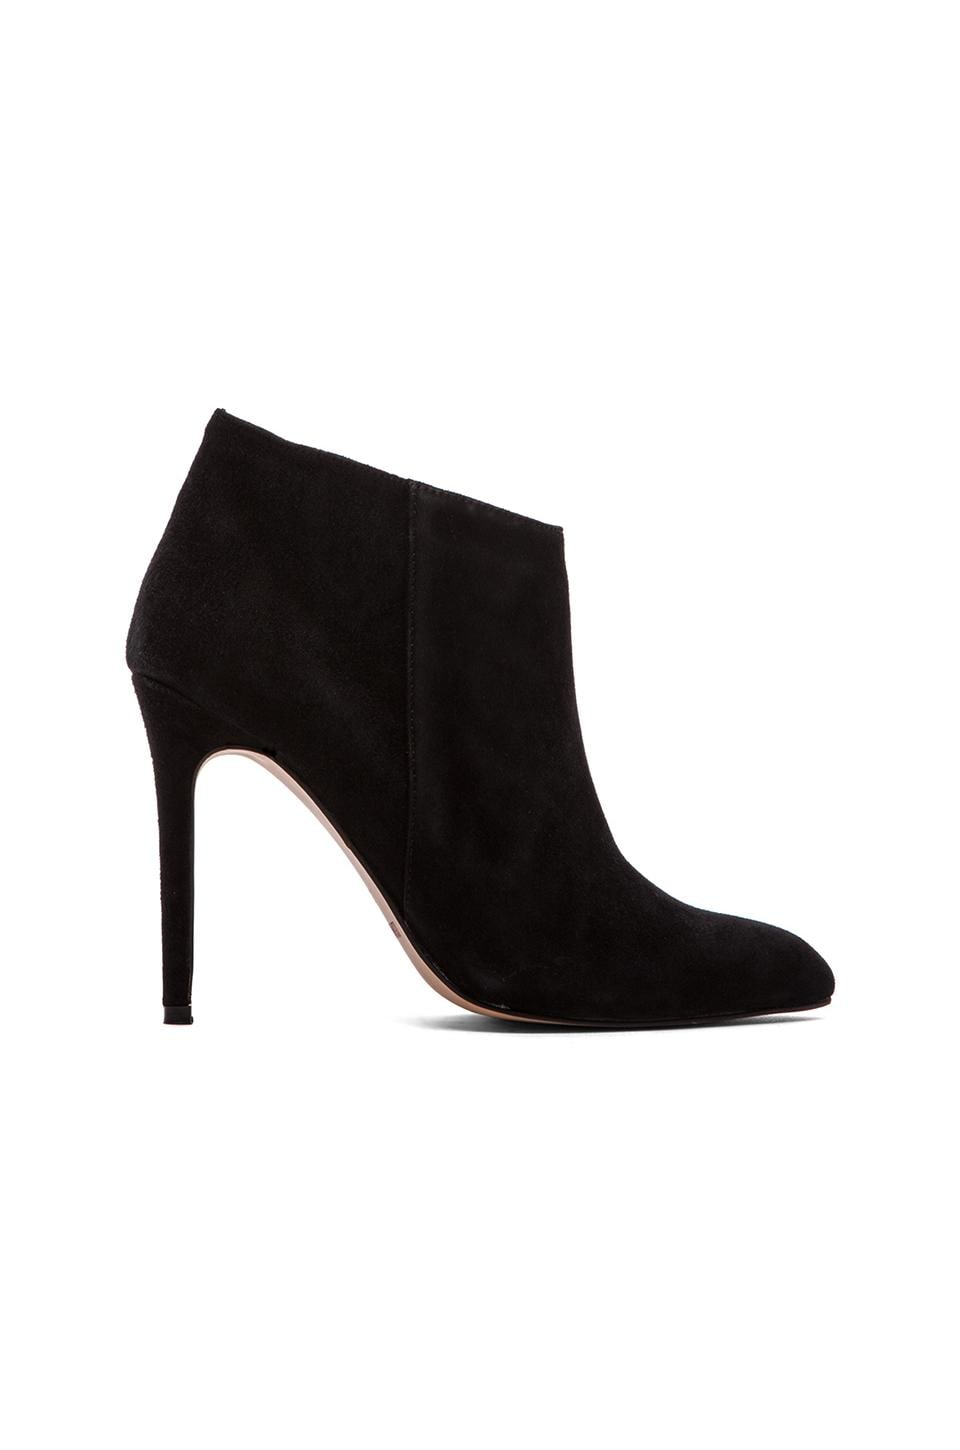 Matiko Darcy Heeled Bootie in Black